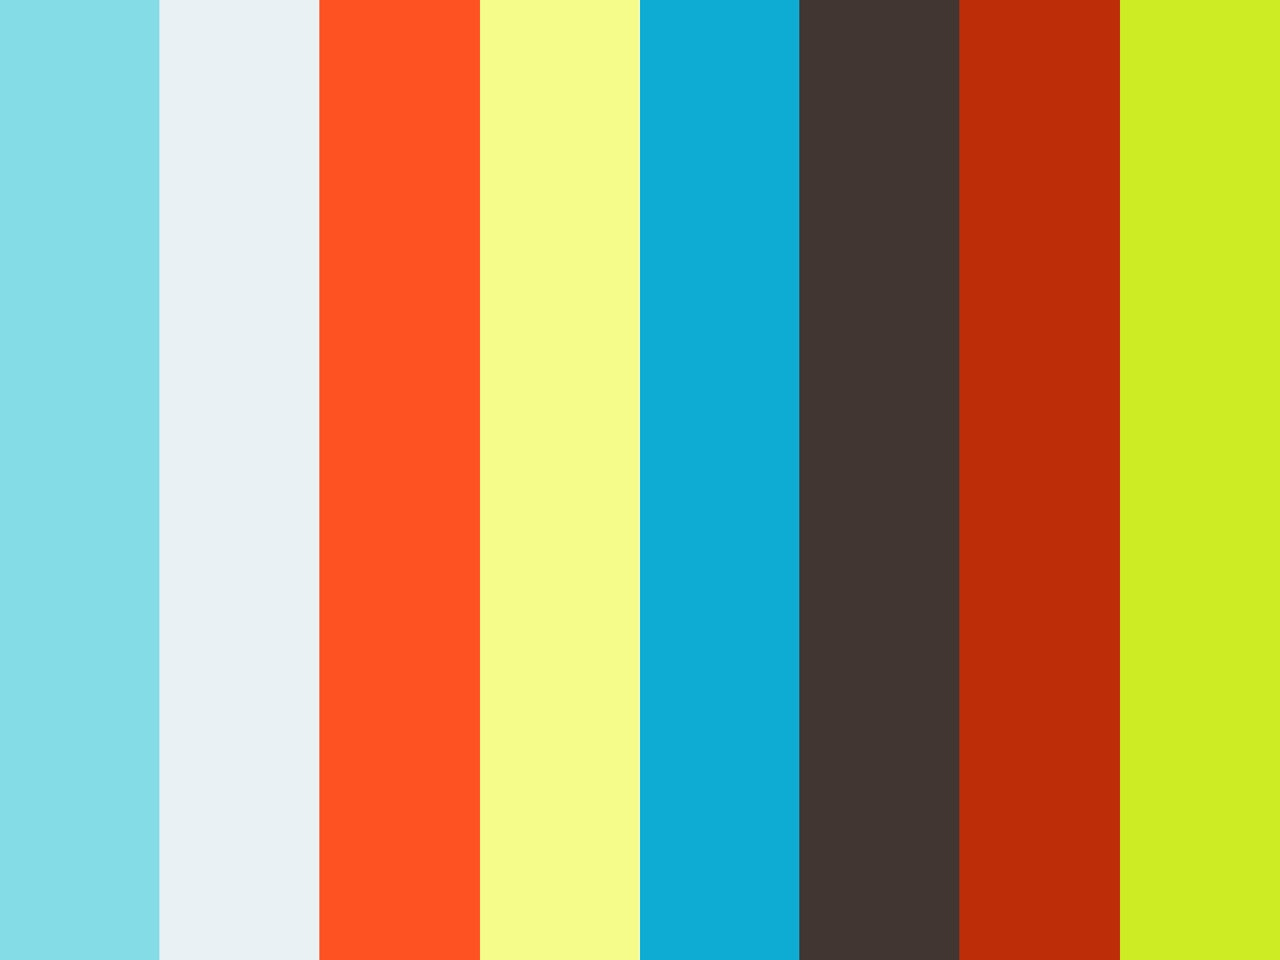 March 8, 2015: 3rd Sunday of Lent